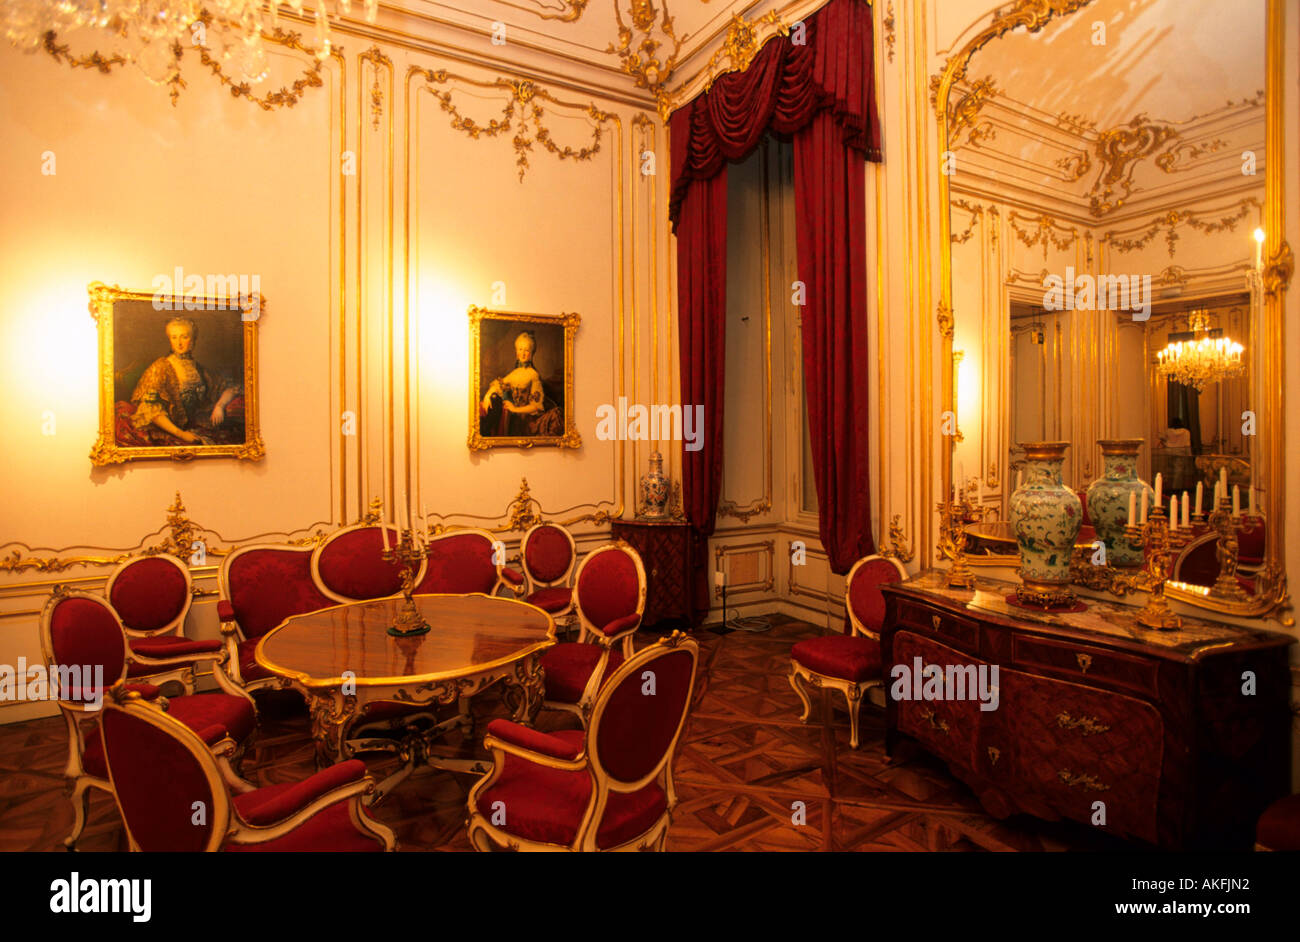 schloss sch nbrunn kinderzimmer stock photo royalty free image 8563921 alamy. Black Bedroom Furniture Sets. Home Design Ideas